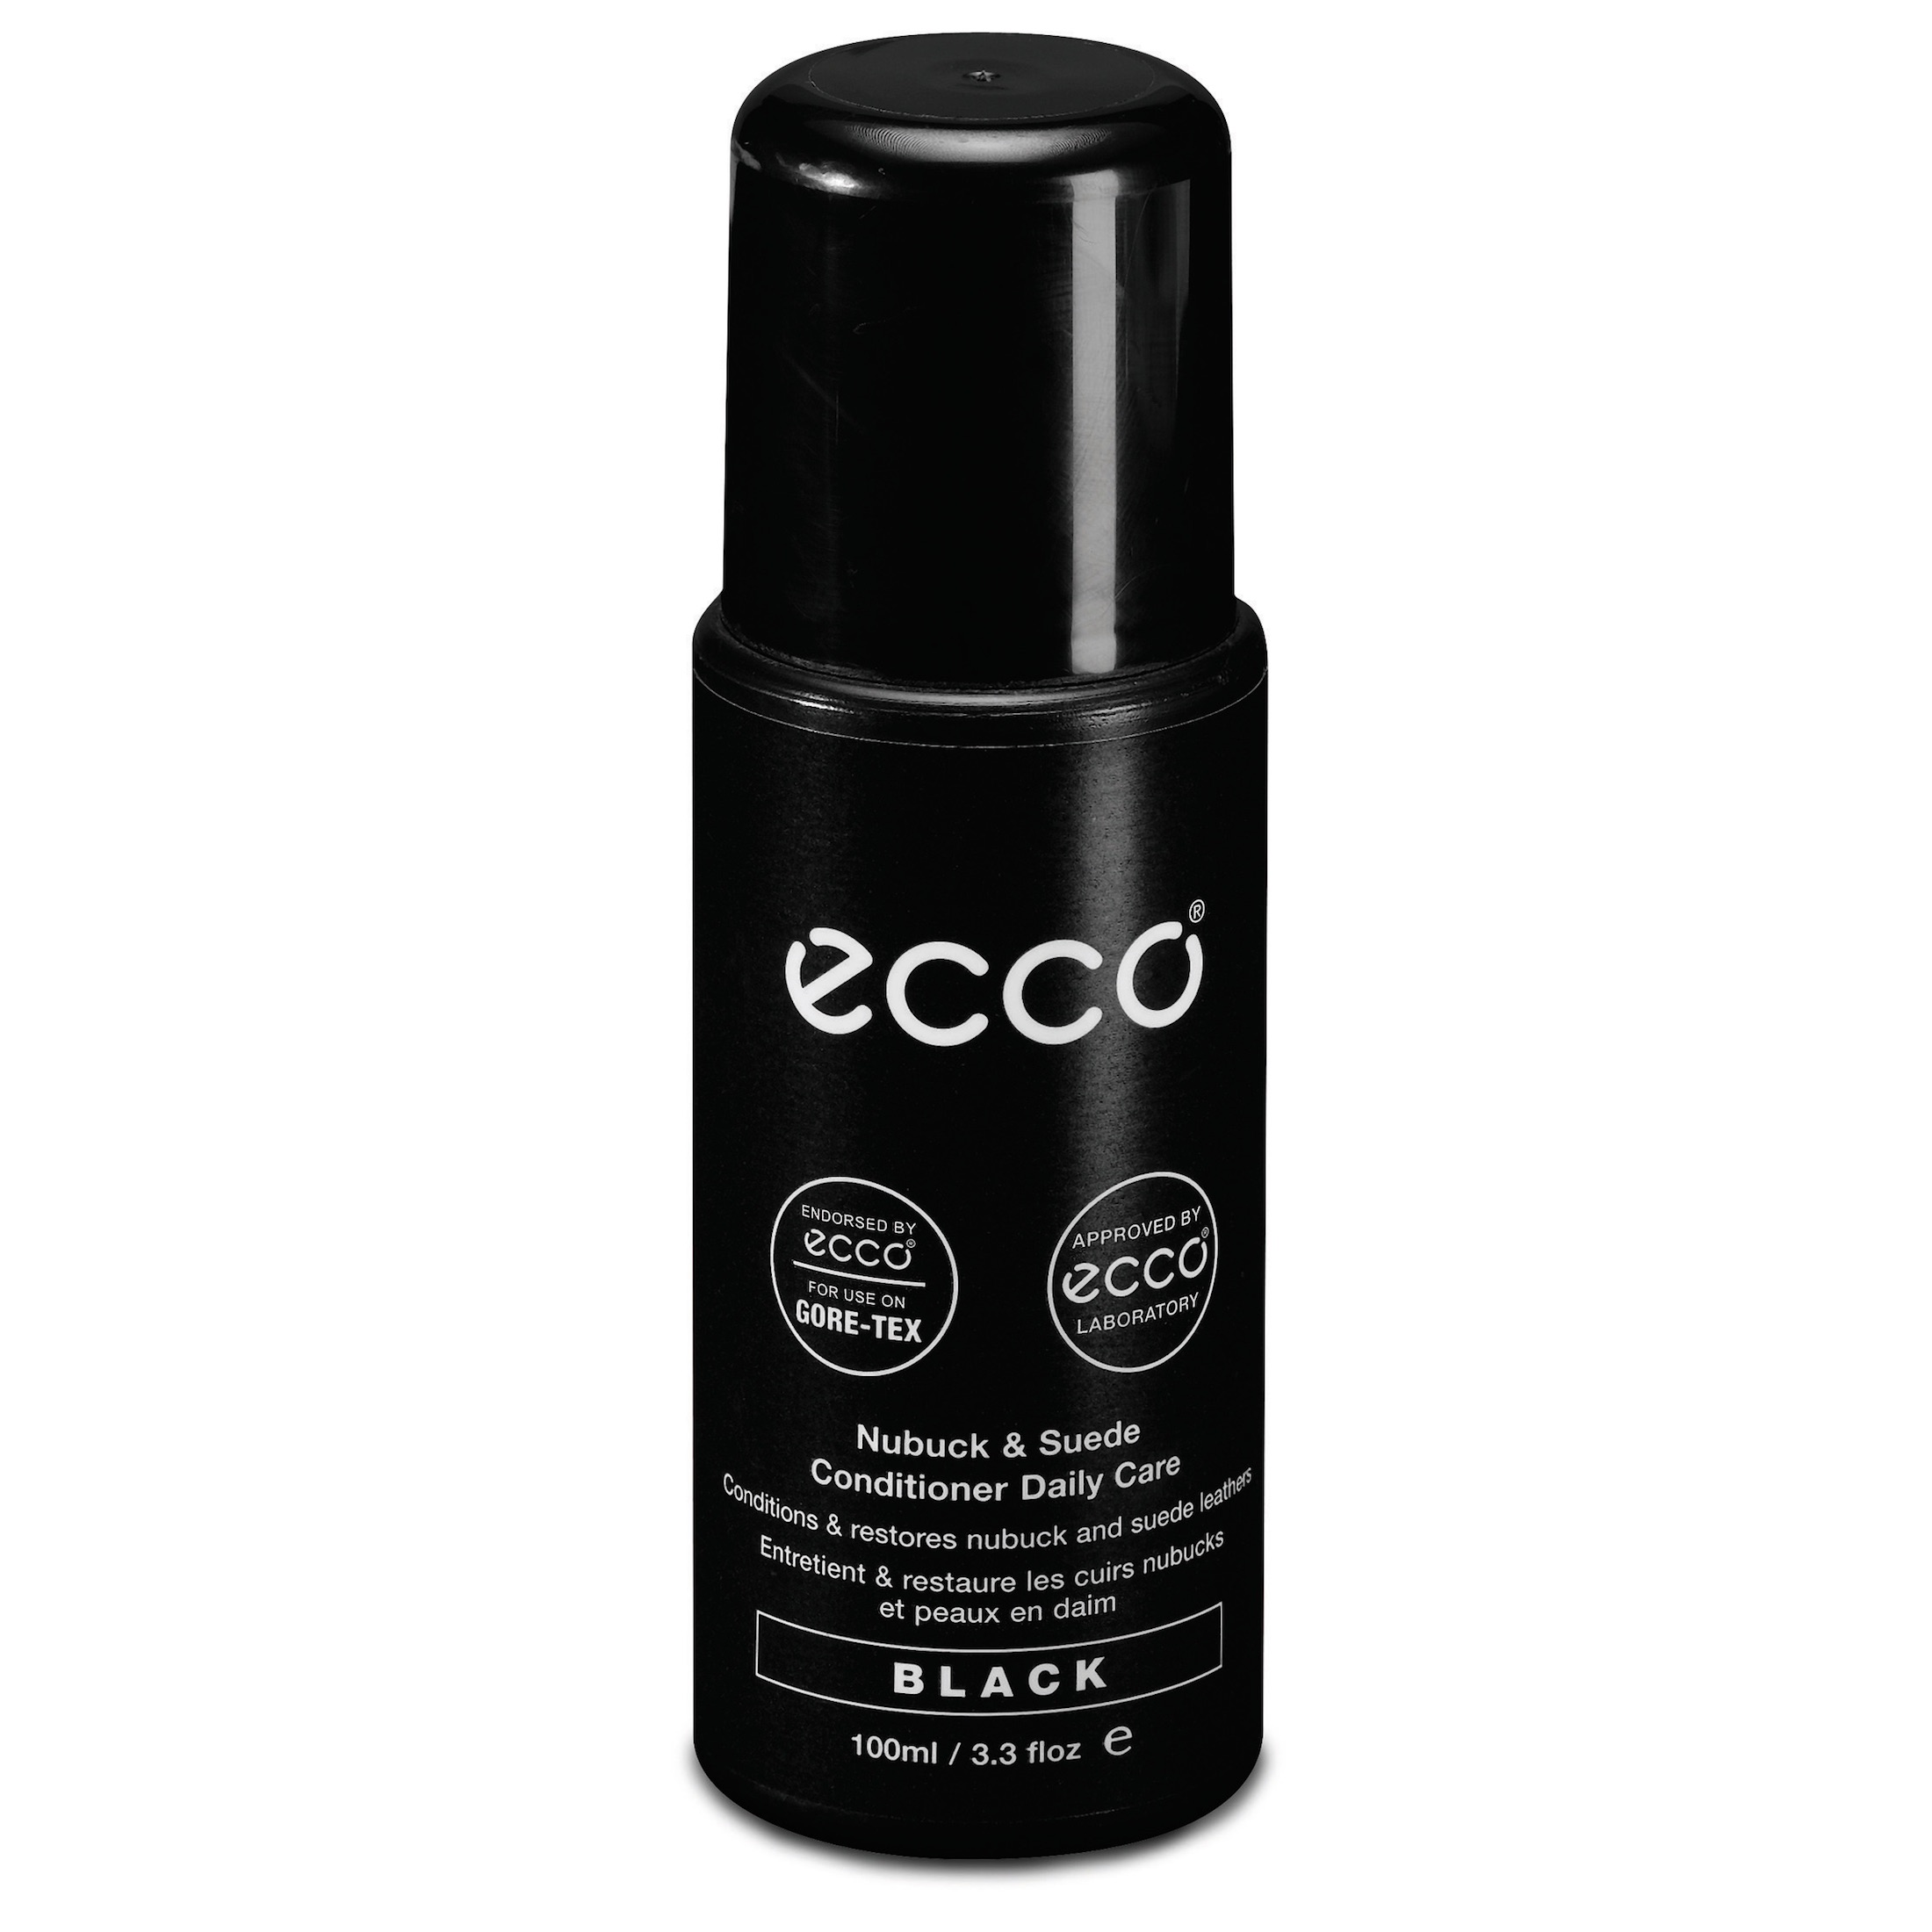 Image of ECCO Nubuck-suede Conditioner